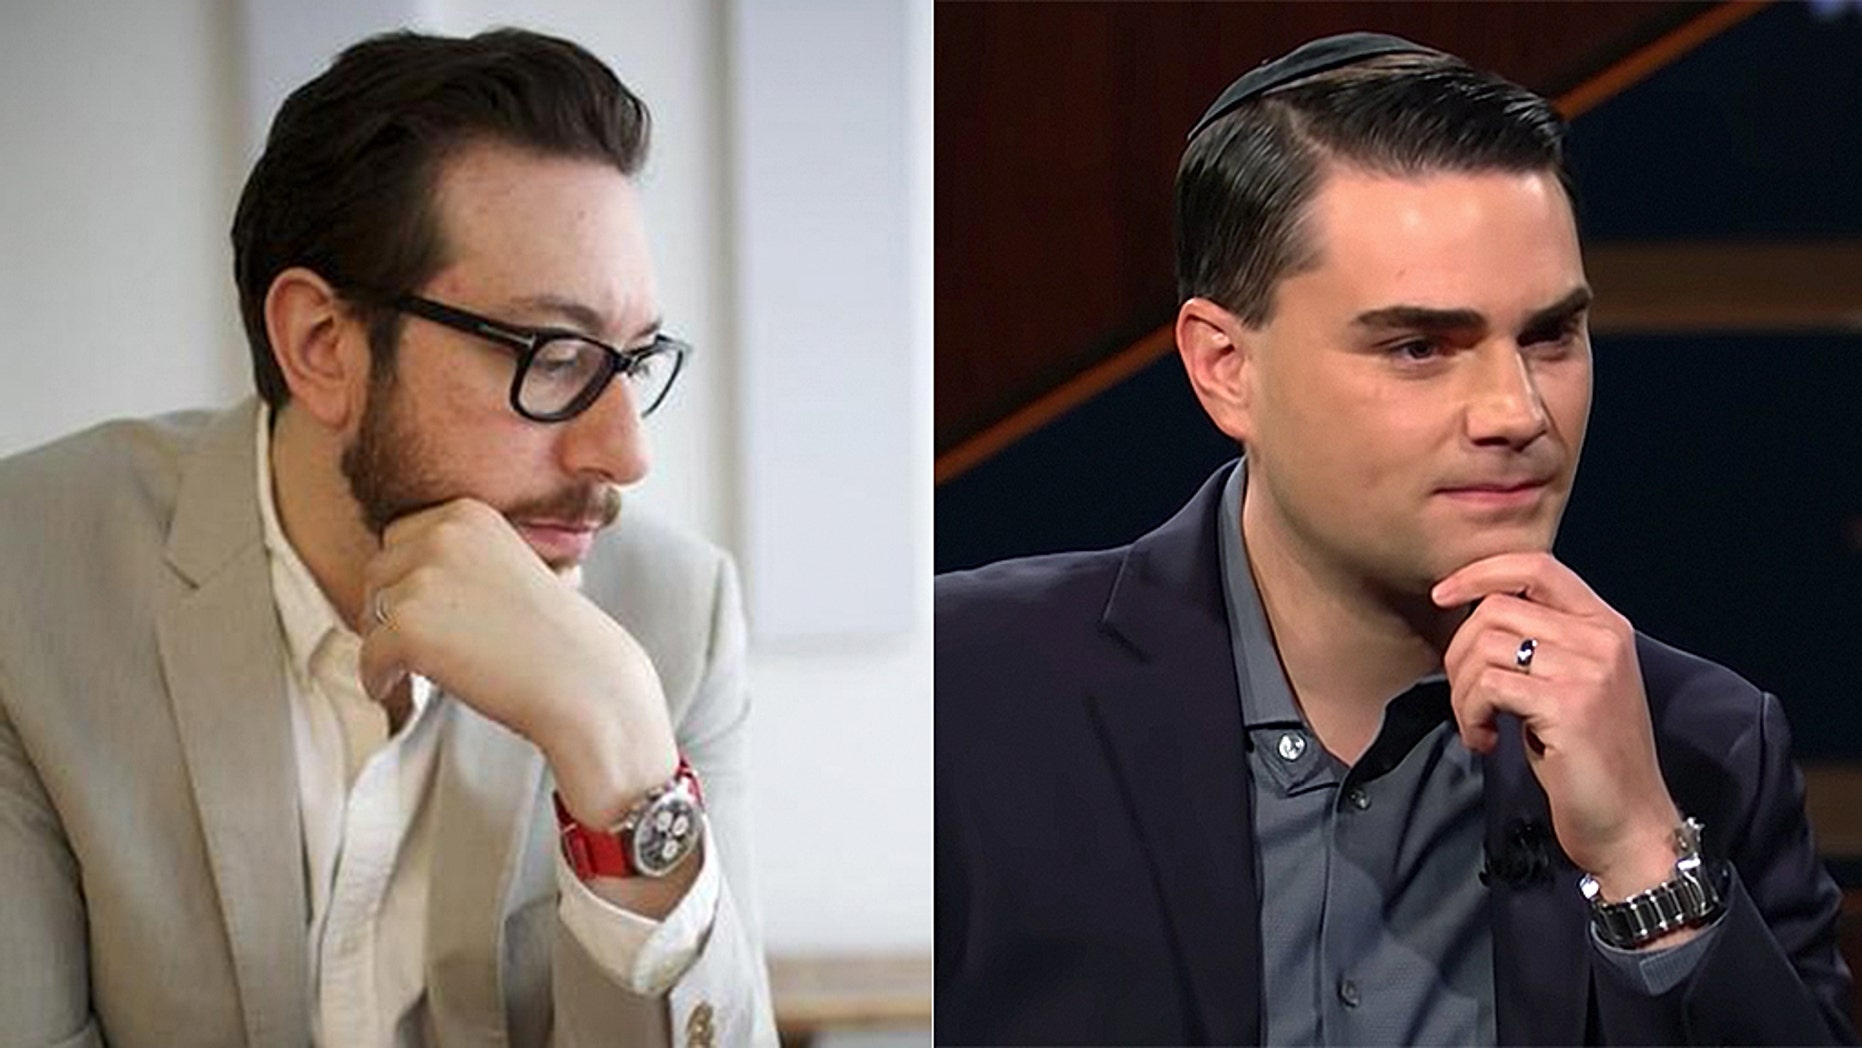 """The Outline founder Joshua Topolsky mocked critics of his shot at Ben Shapiro, claiming they didn't understand the """"metaphor."""""""